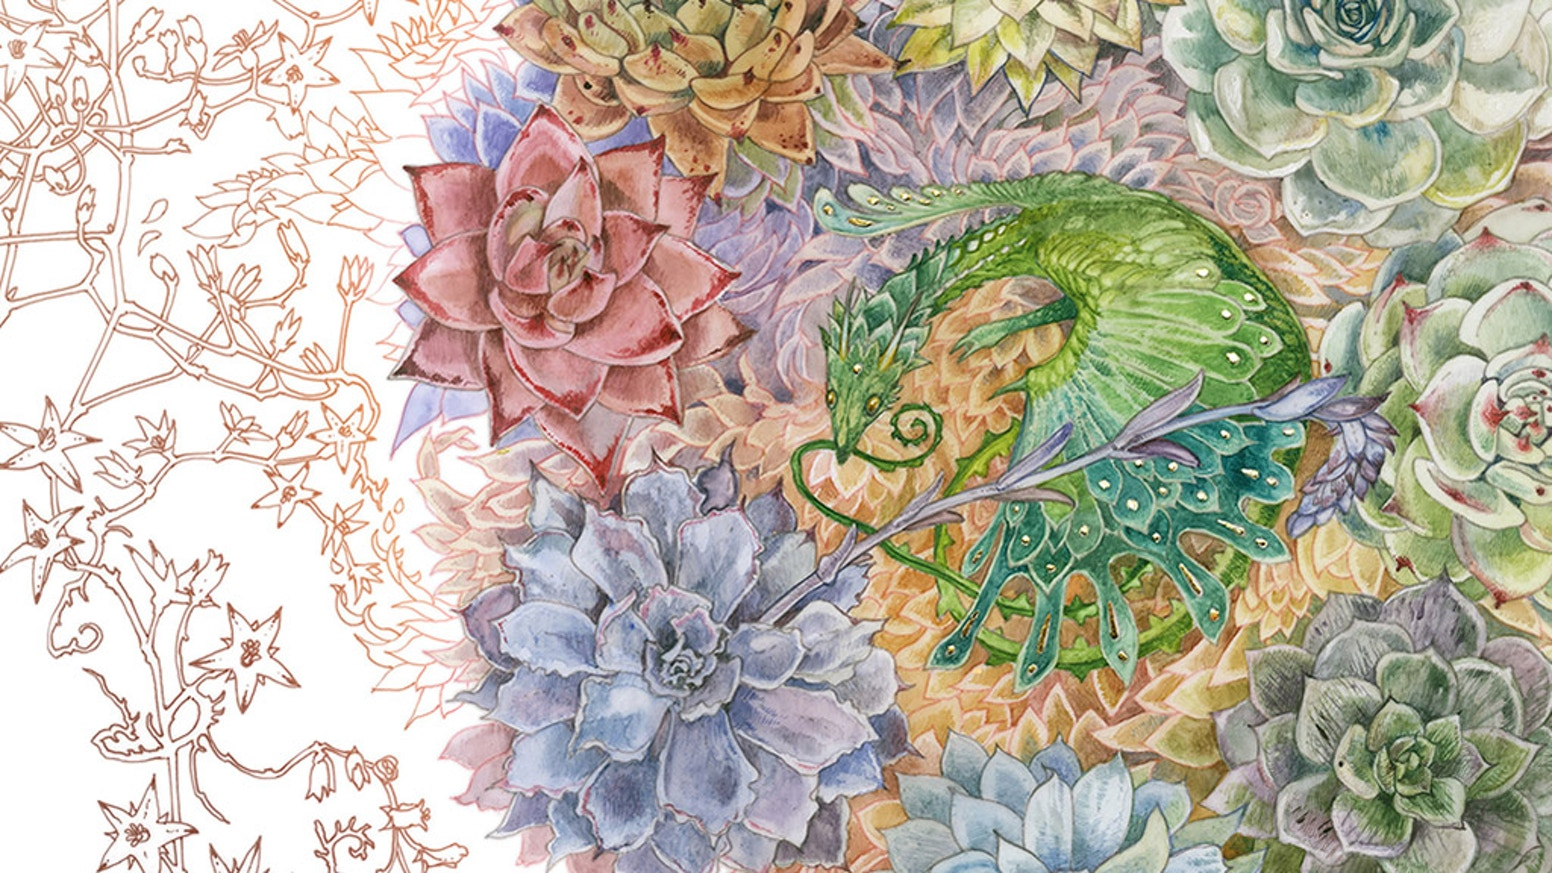 A Fantastical Art And Coloring Book Filled With Garden Whimsy